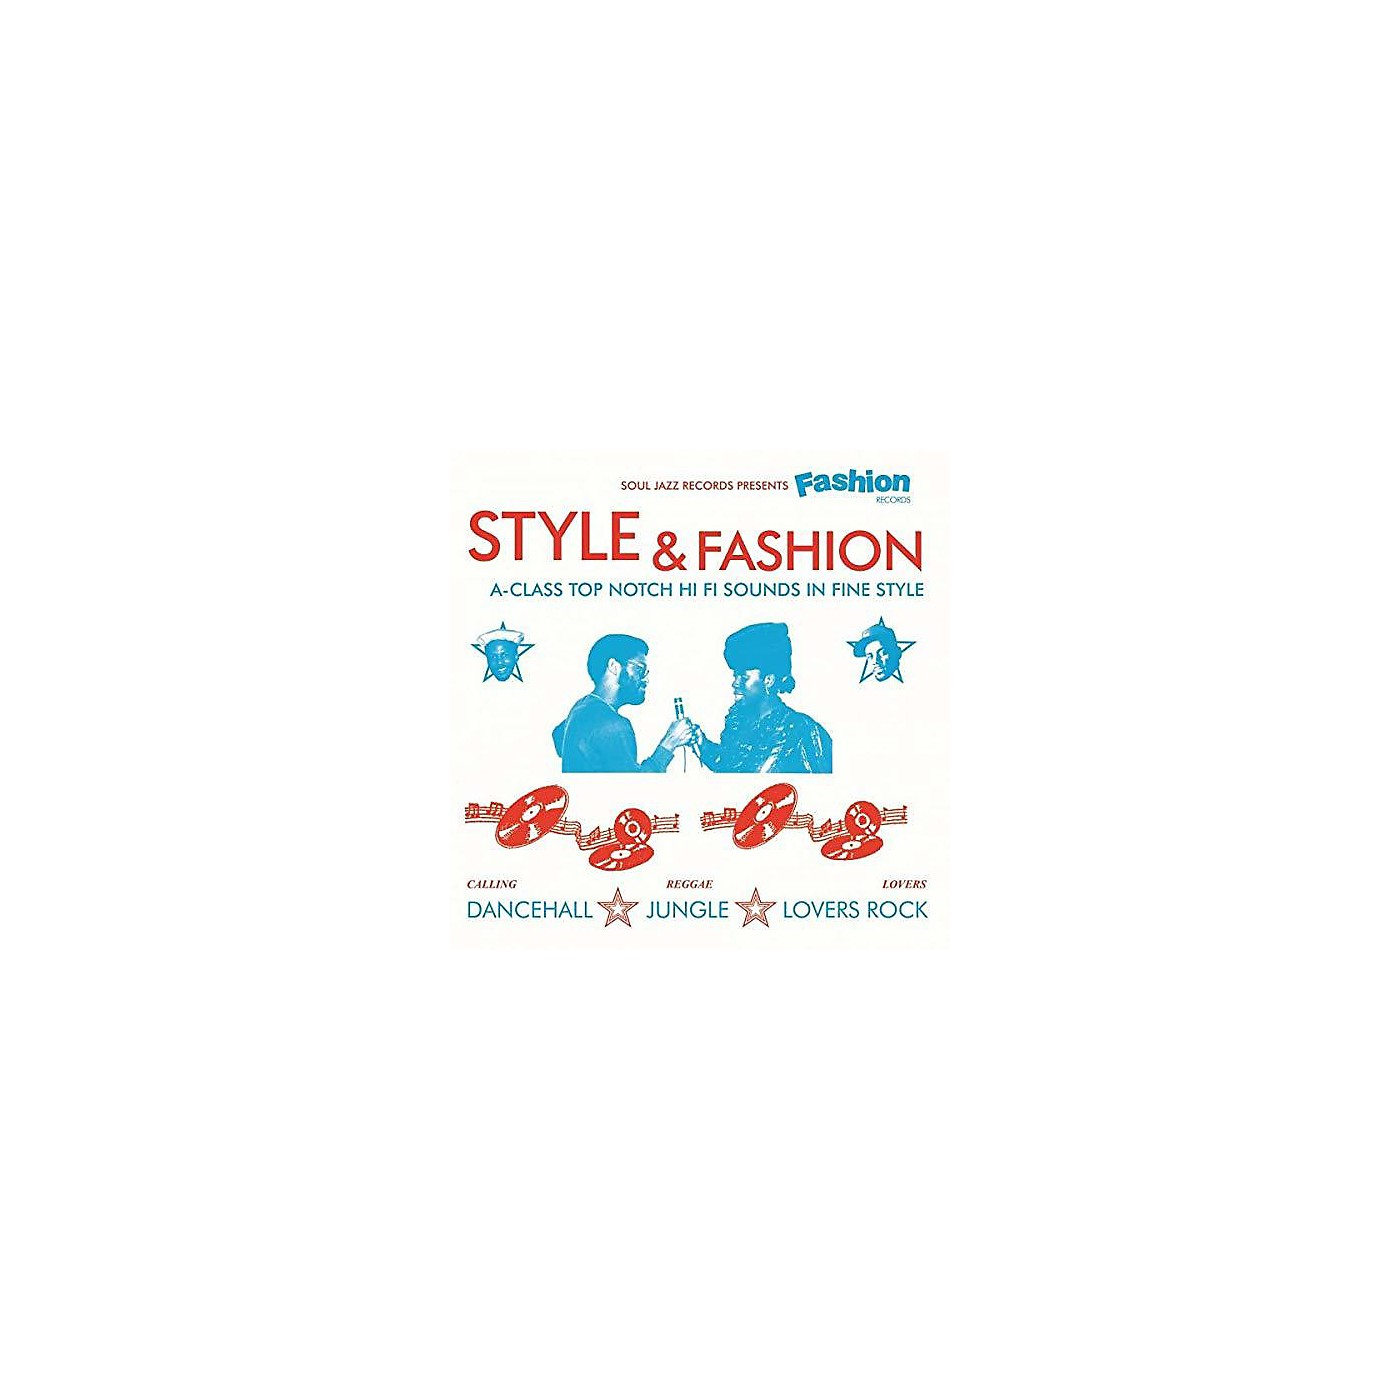 Alliance Soul Jazz Records Presents Fashion Records: Style & Fashion thumbnail